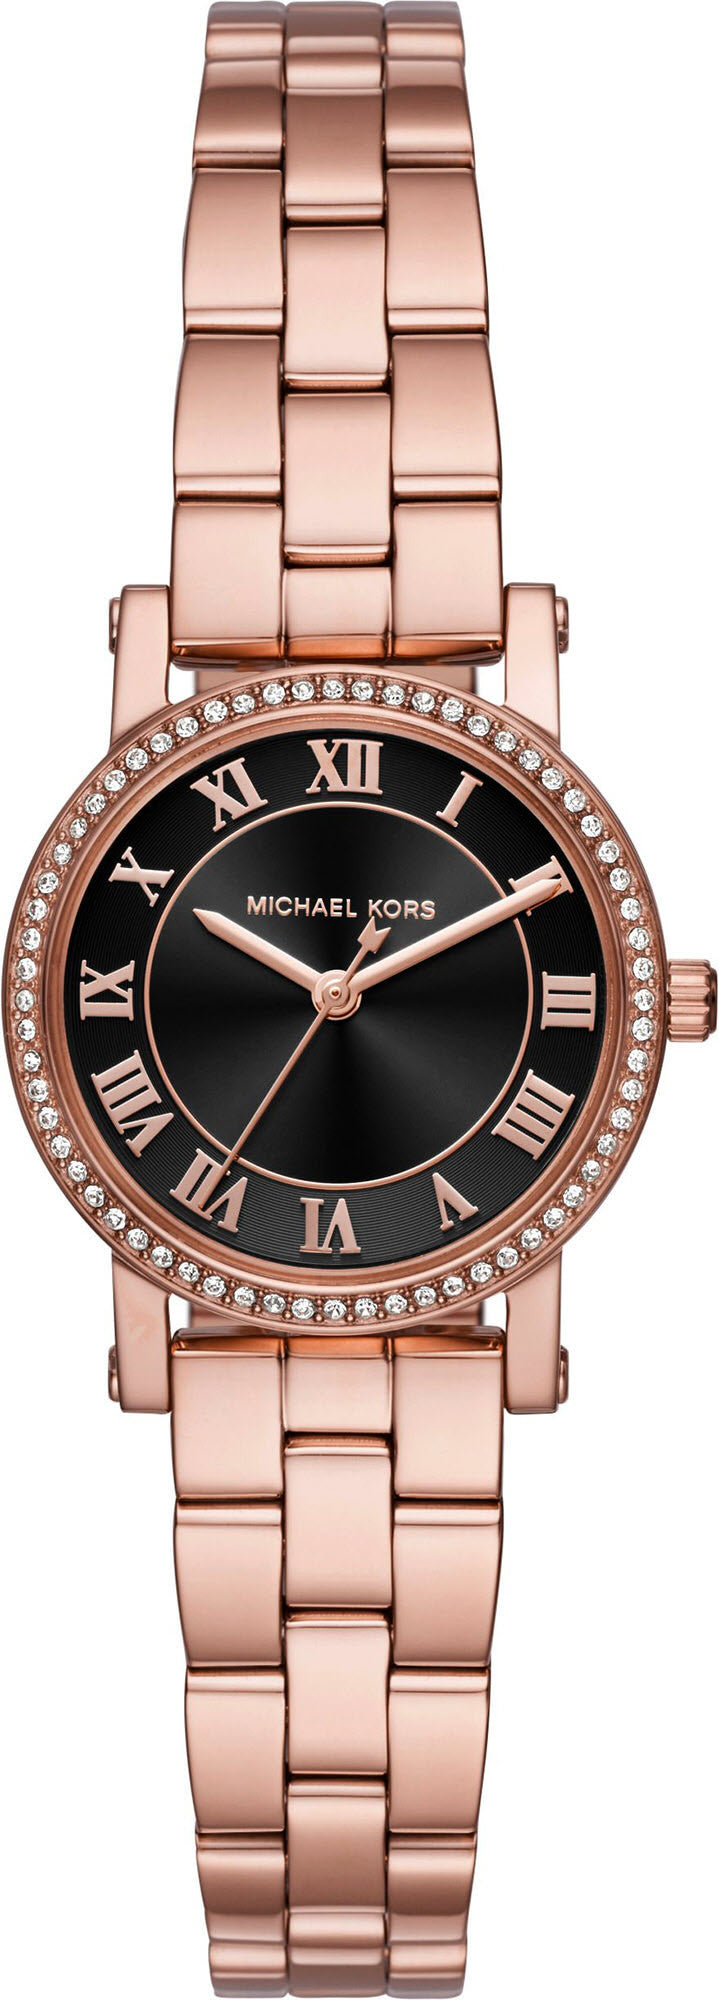 Michael Kors Watch Norie Ladies